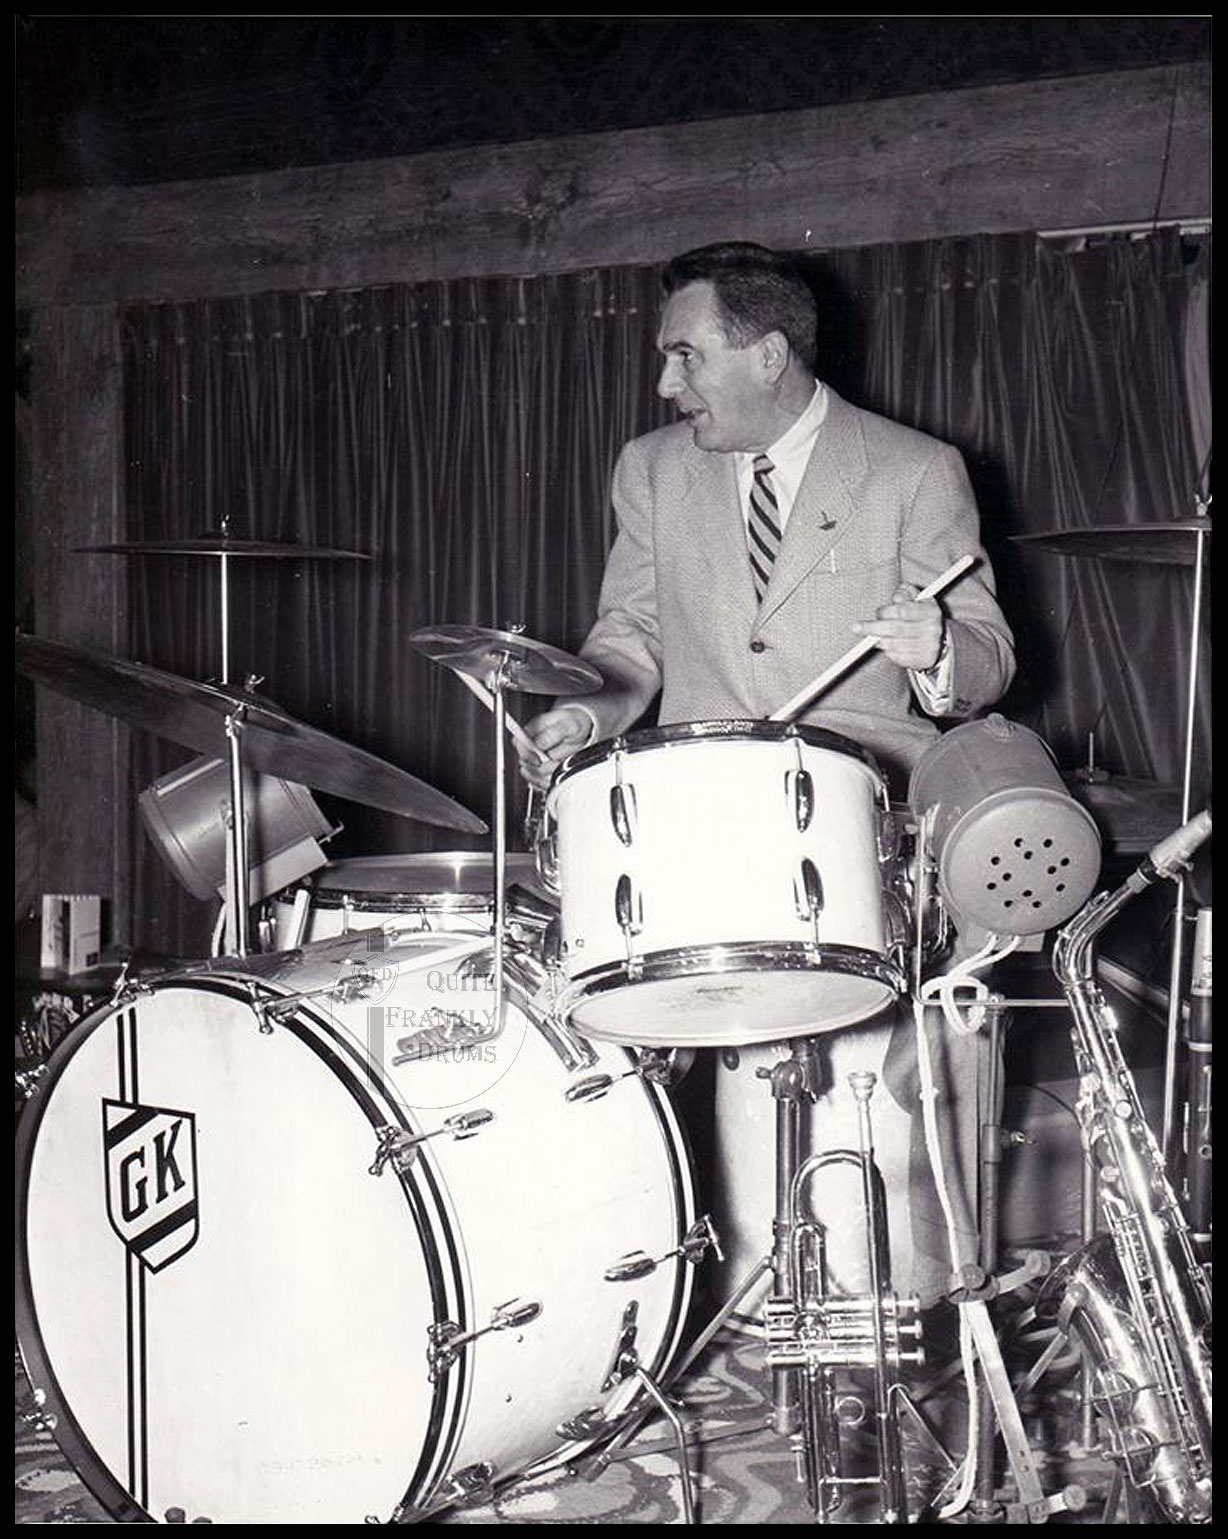 Gene Krupa seen here in 1954 on the same model Slingerland Radio King Outfit